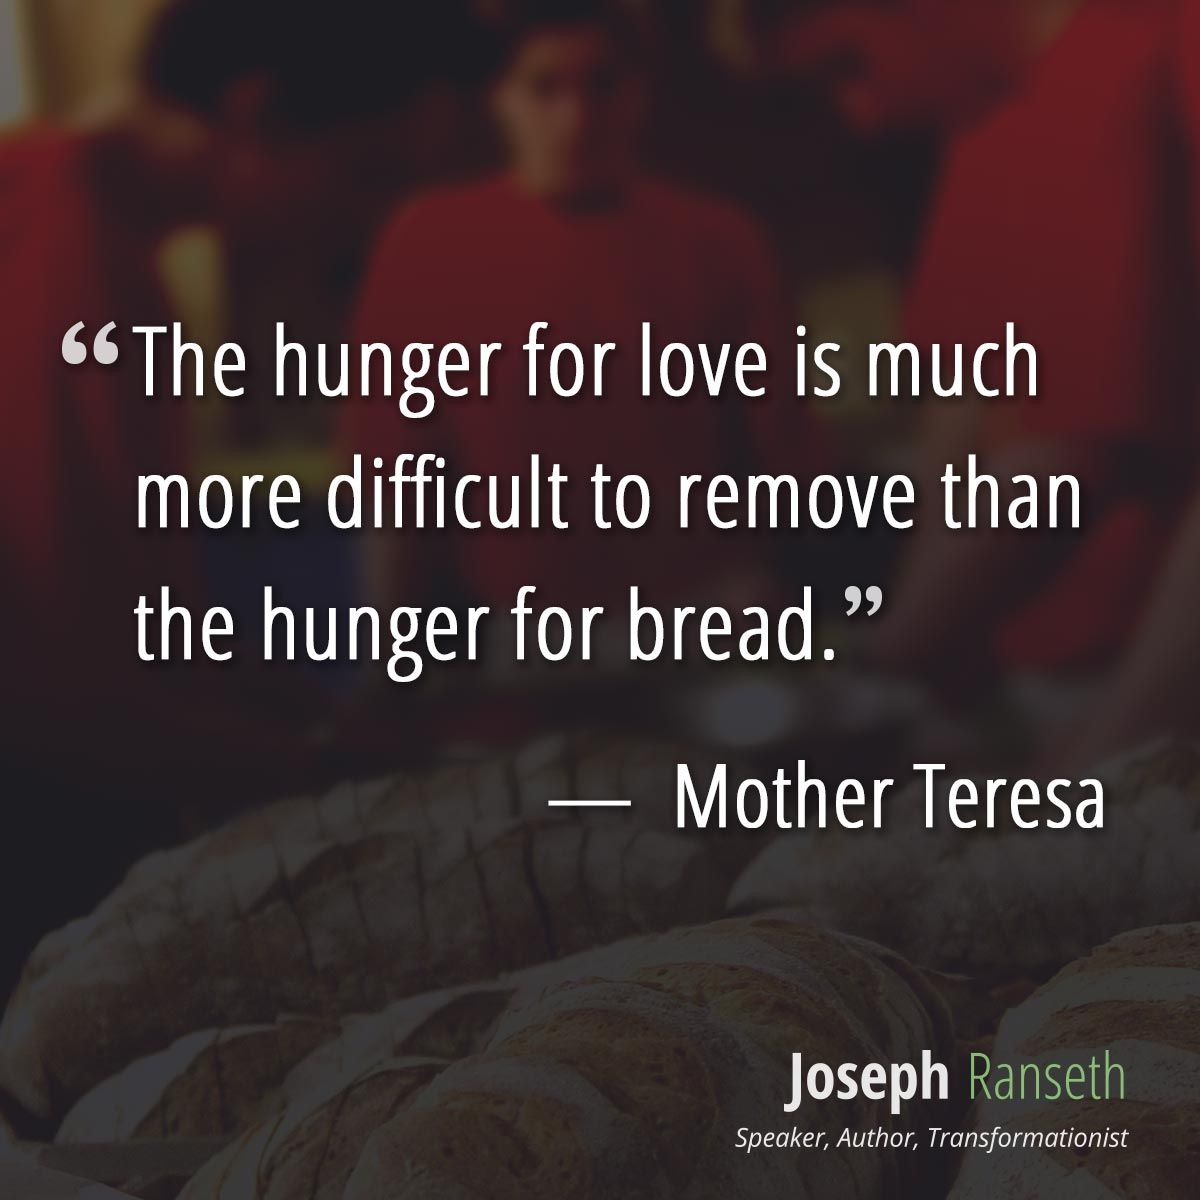 Mother Teresa Love Quotes 12 Inspiring Mother Teresa Quotes On The Anniversary Of Her Death